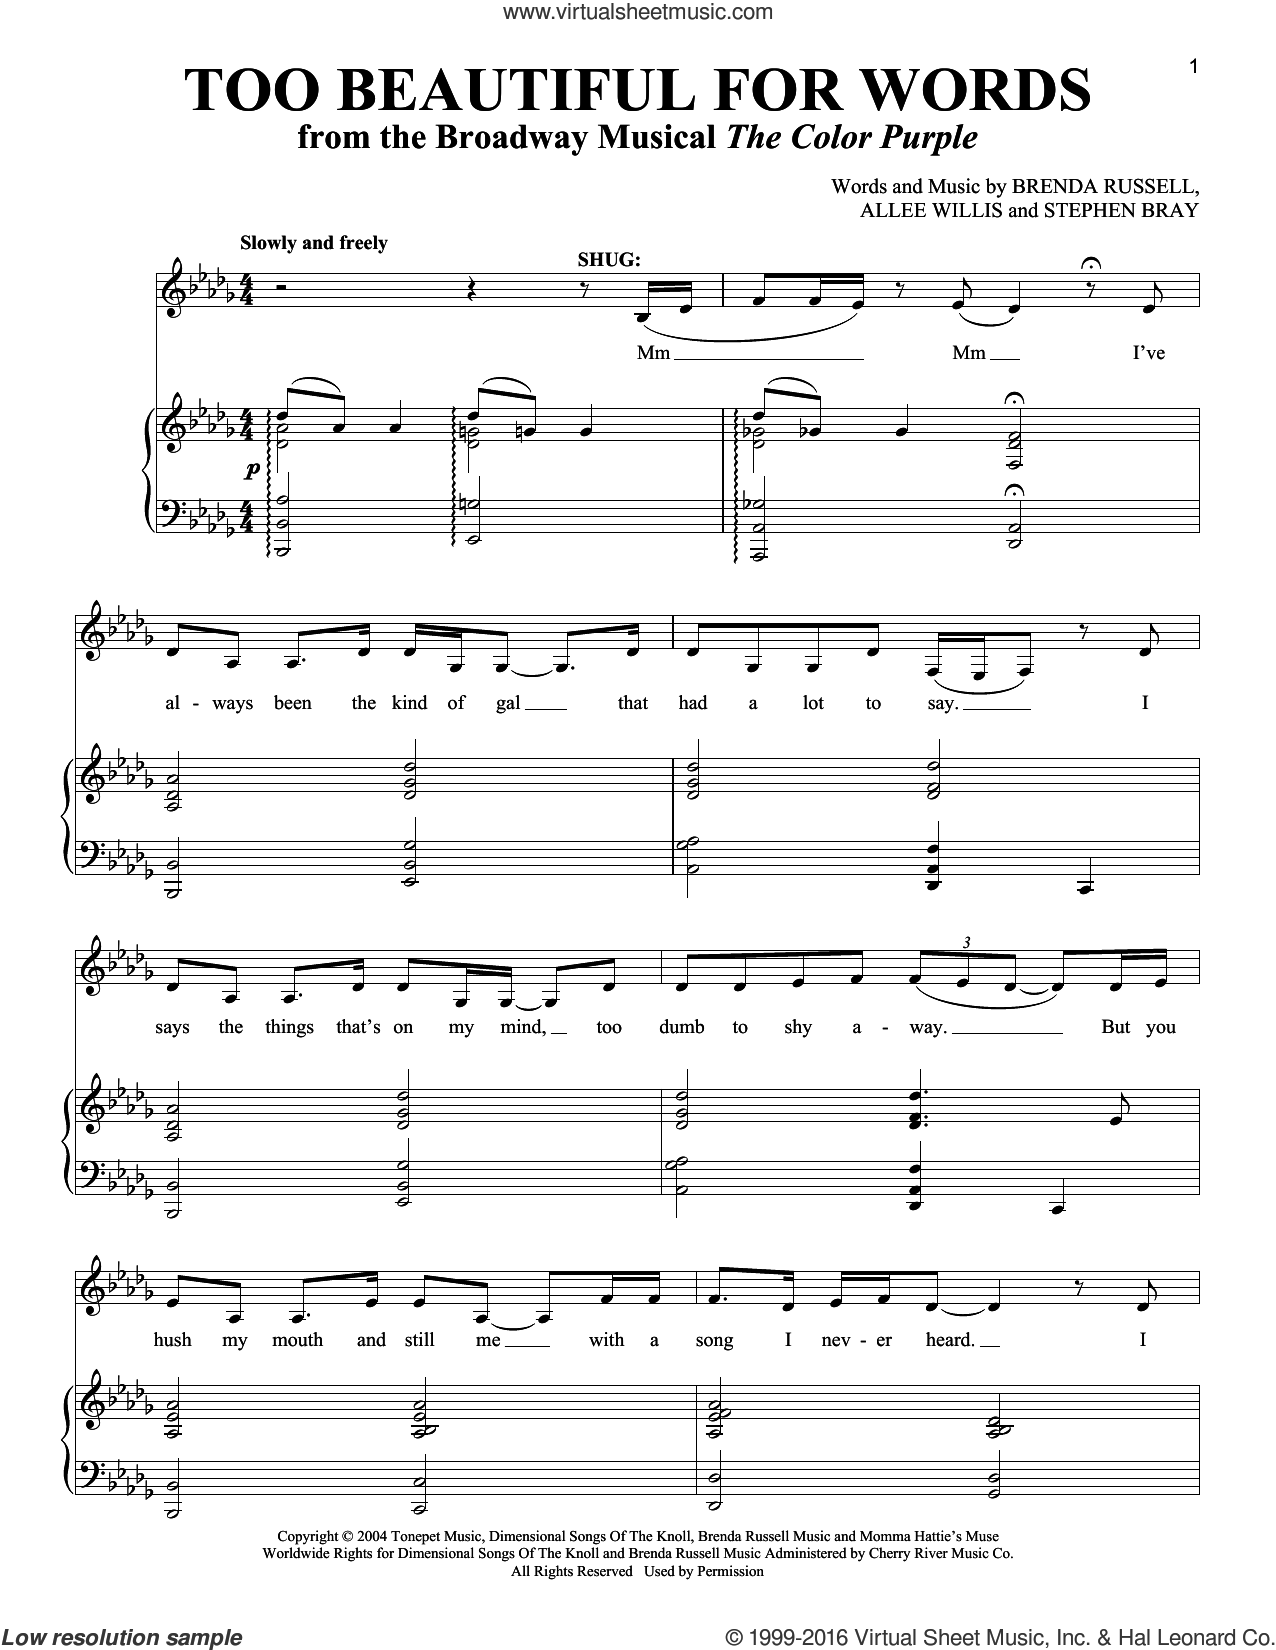 Too Beautiful For Words sheet music for voice and piano by Stephen Bray, Allee Willis and Brenda Russell. Score Image Preview.